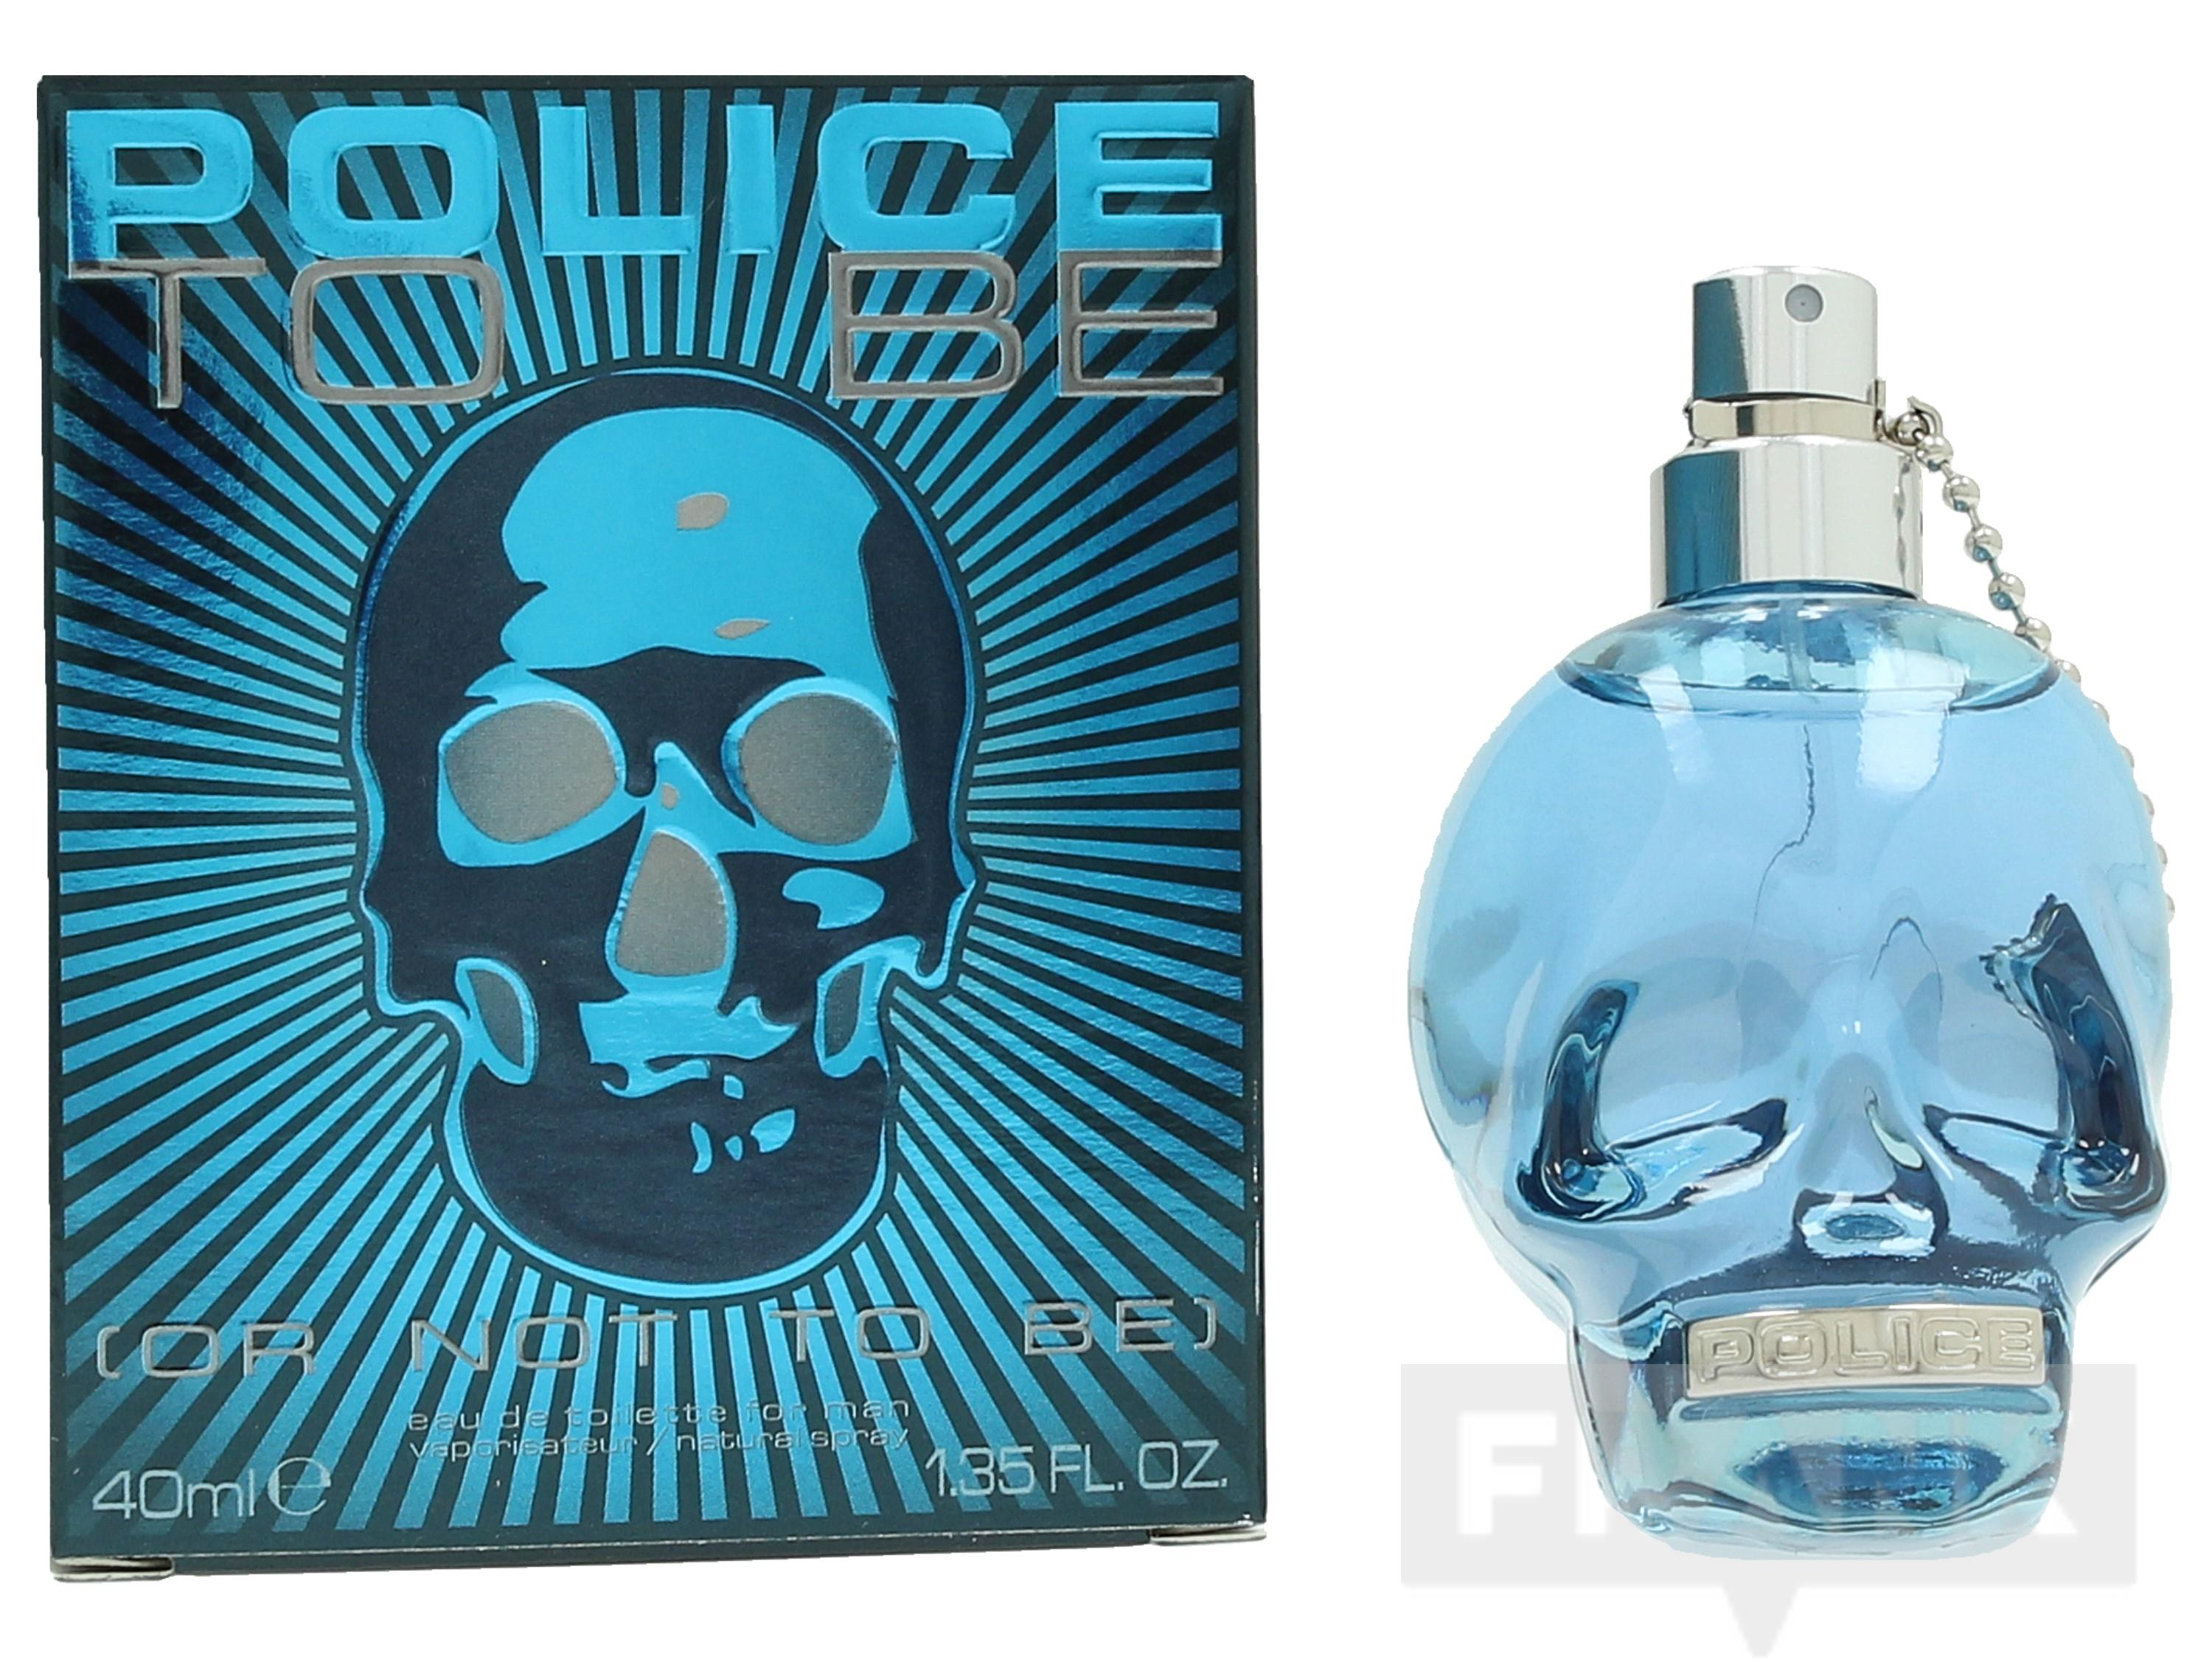 Police To Be Or Not To Be For Man Spray EDT (Inhoud: 40ml)